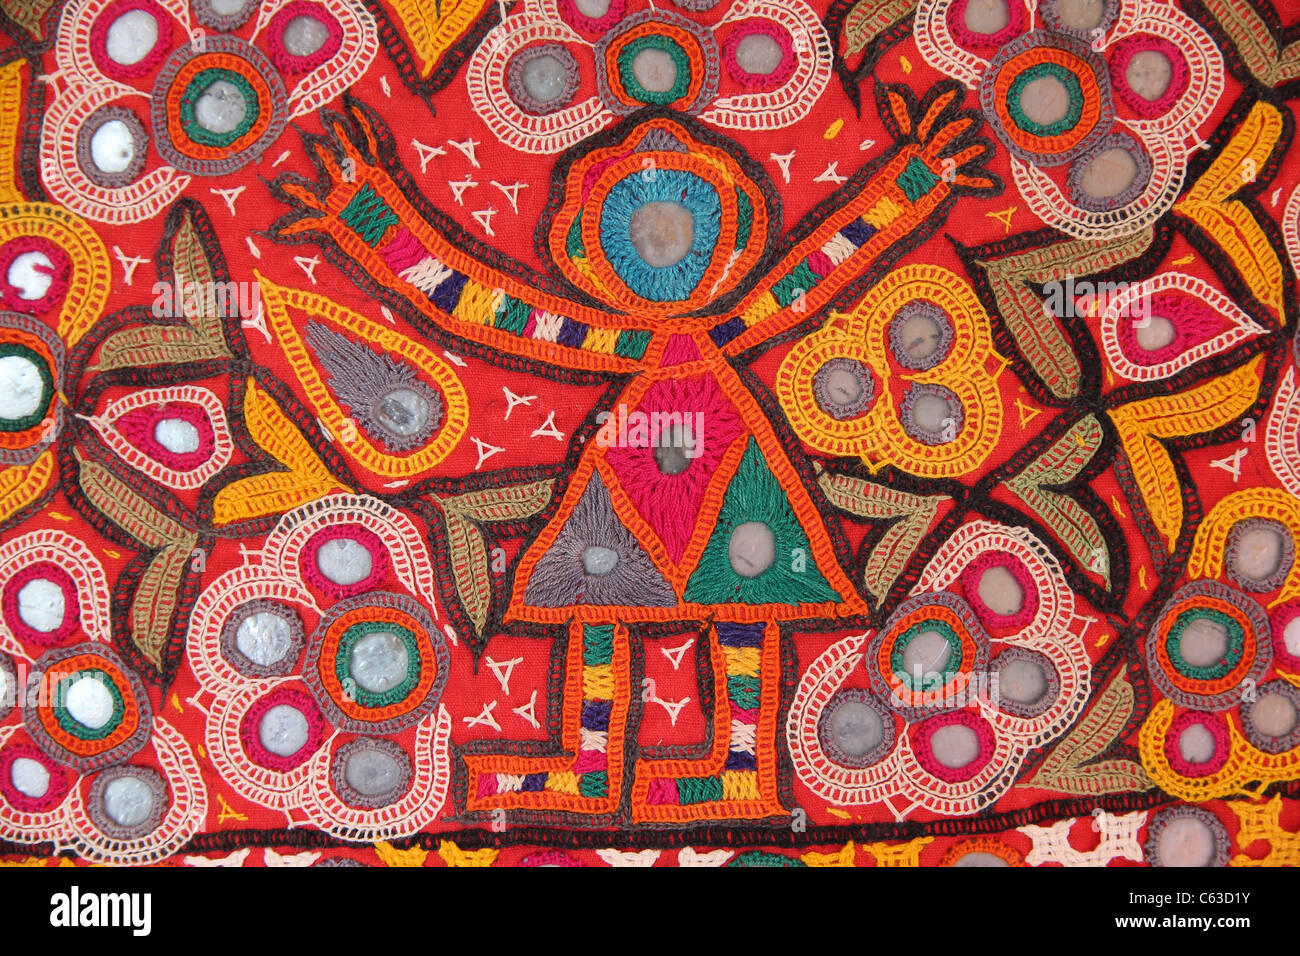 Female Figure In Indian Embroidery Part Of A Gujarati Toran From Stock Photo Royalty Free ...